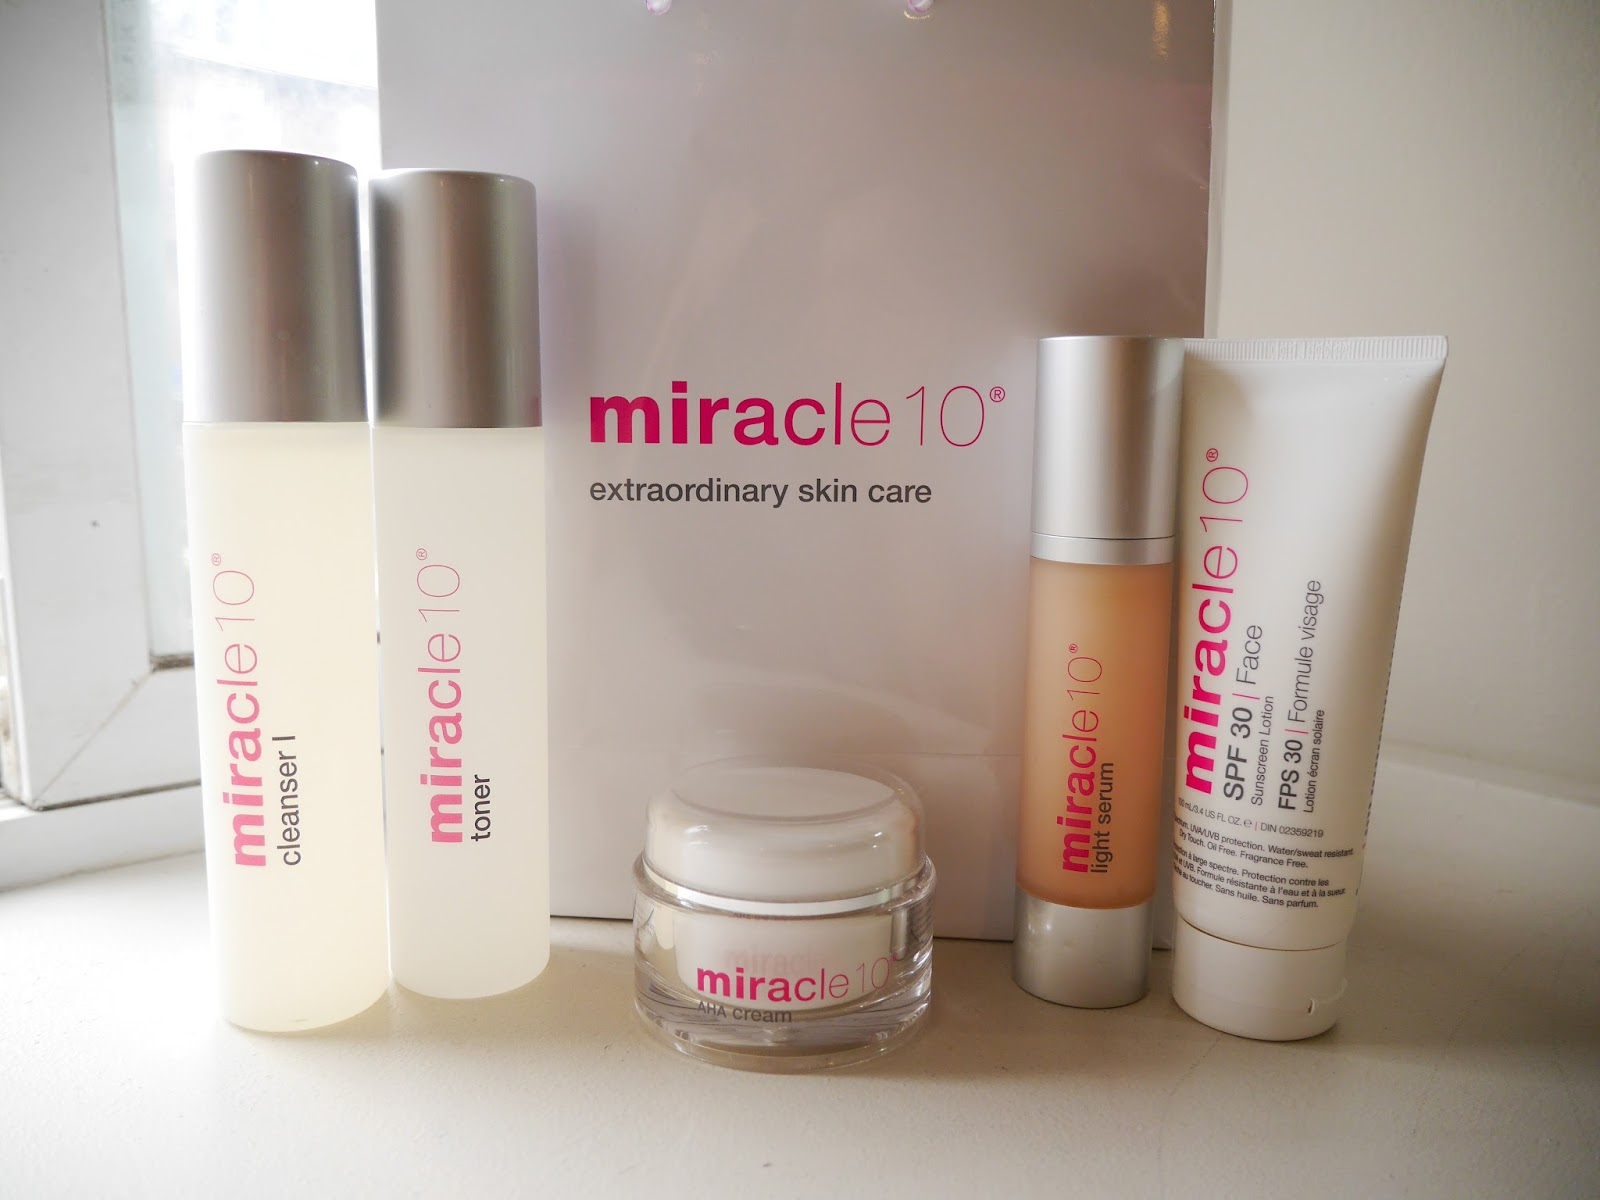 miracle10 skincare and peel review cleanser I toner aha cream light serum spf 30 face lotion ingredients